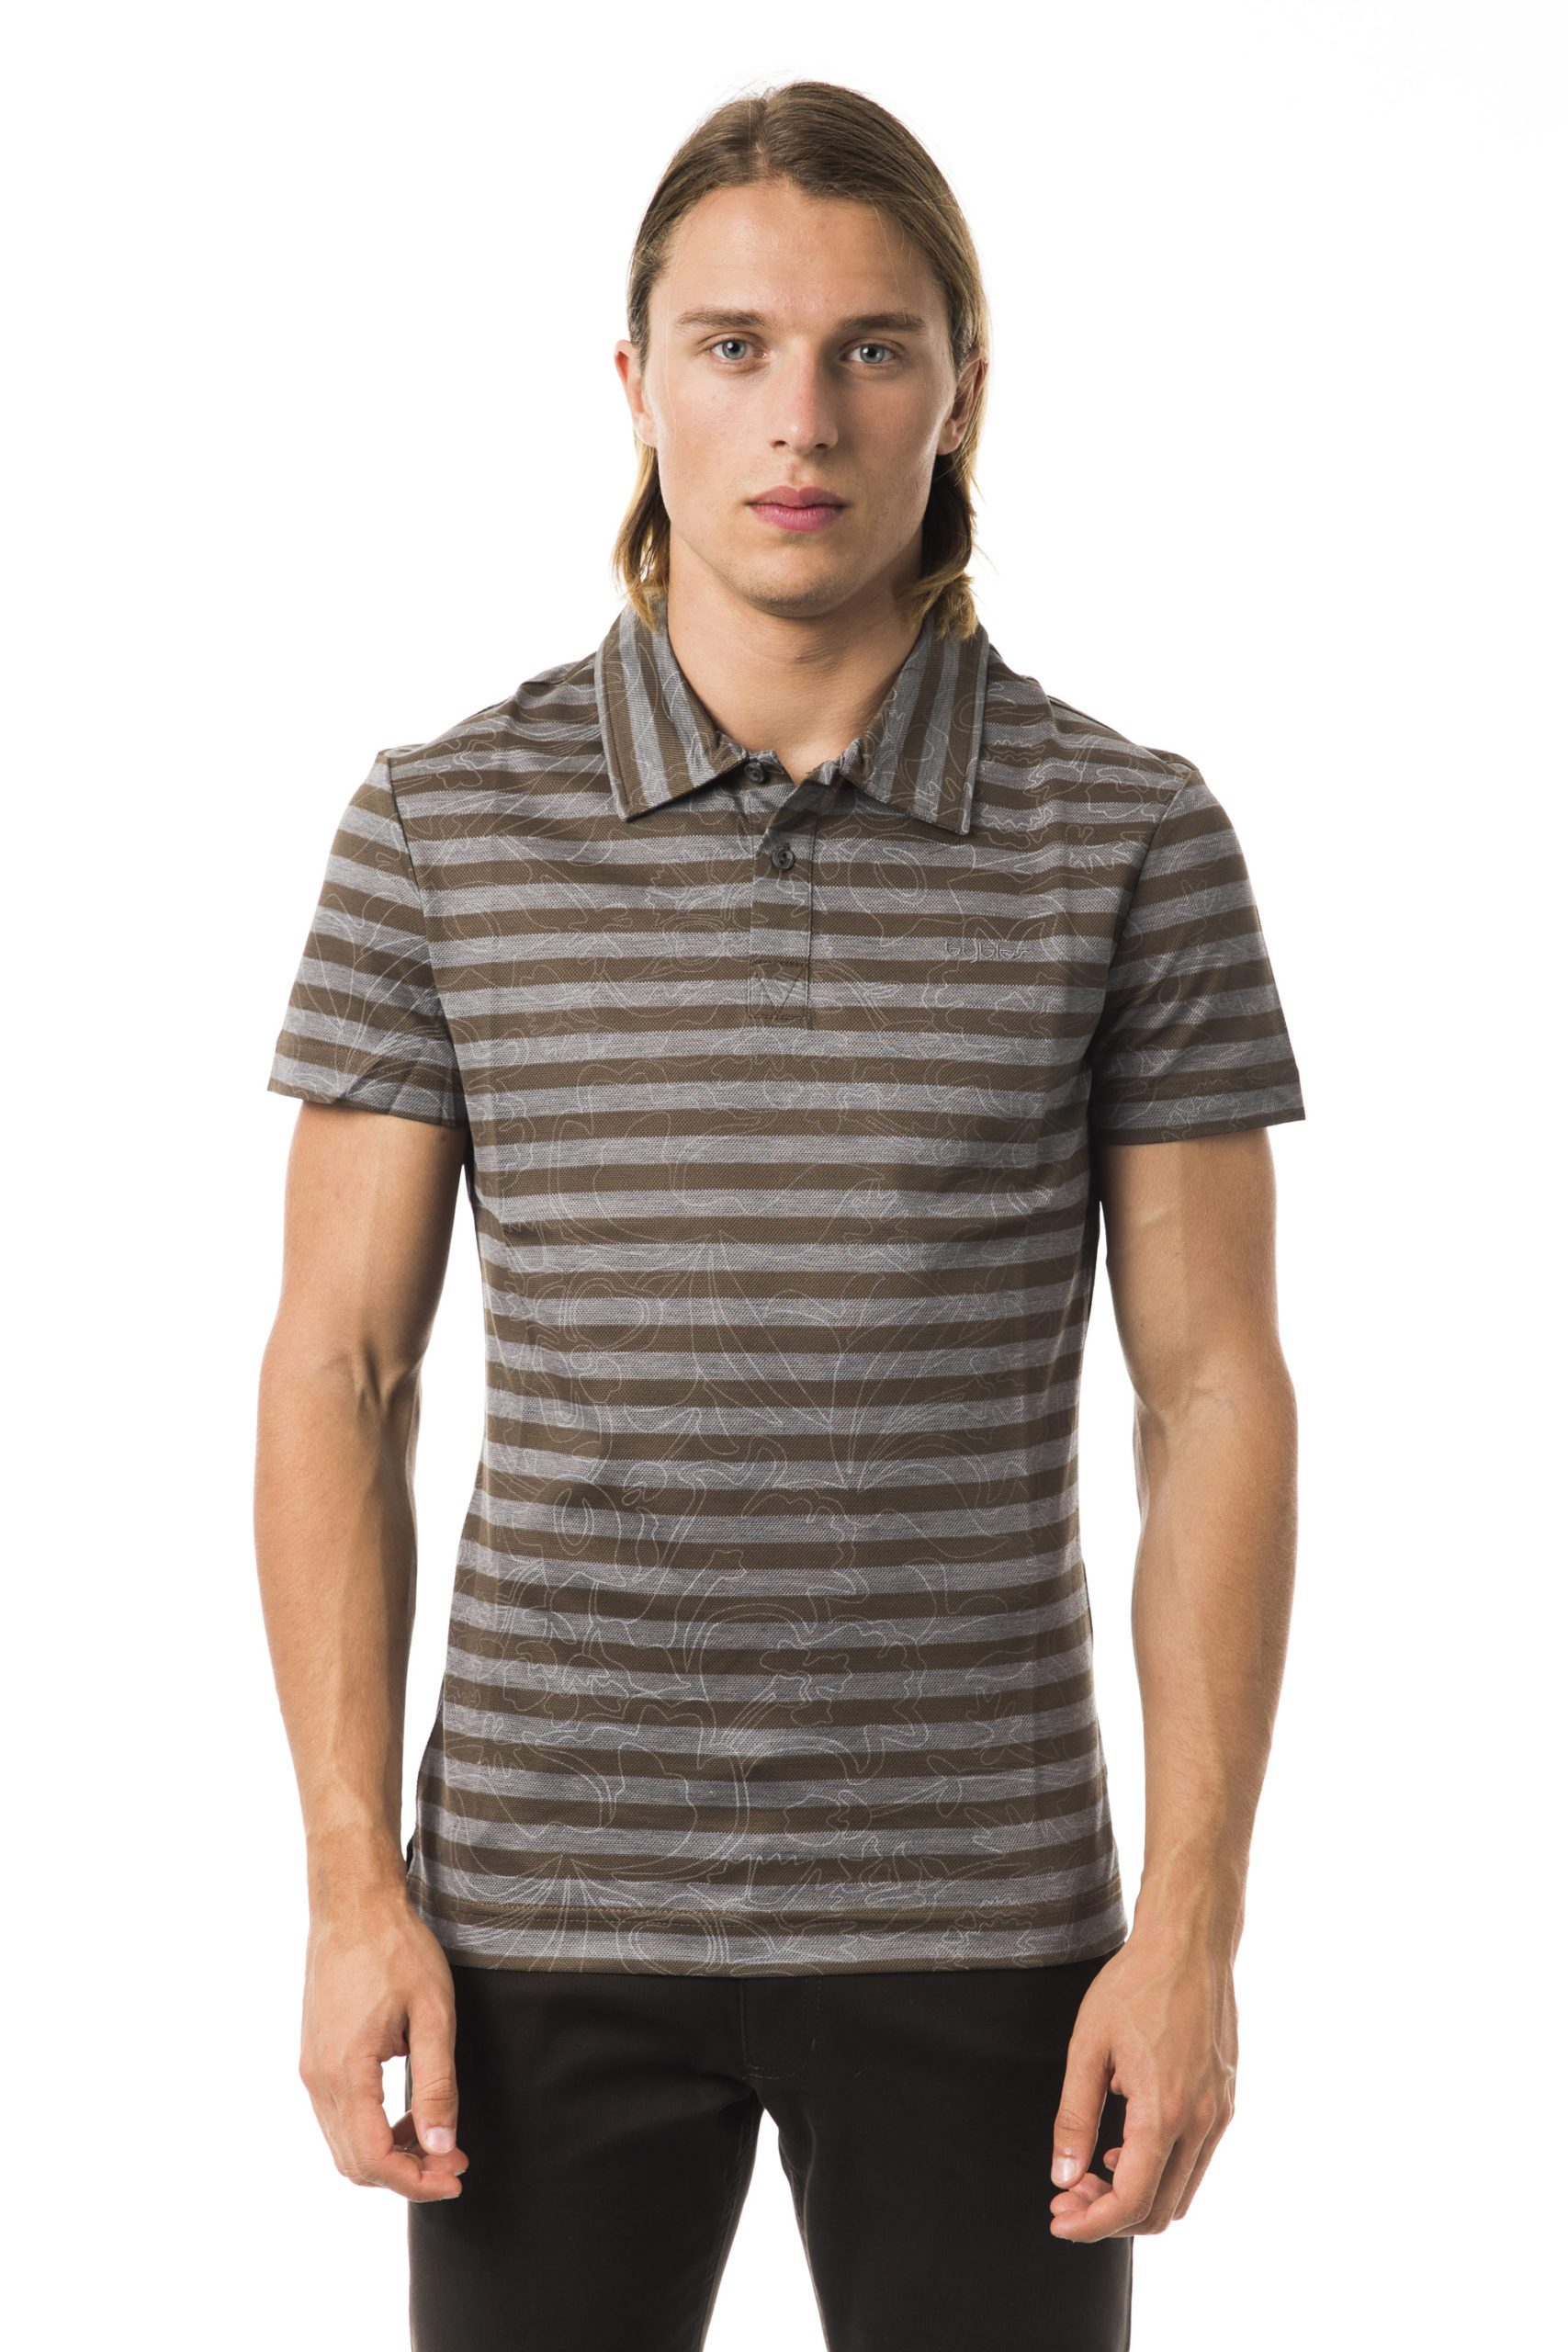 Byblos Men's SS Polo Shirt Gray BY994878 - S